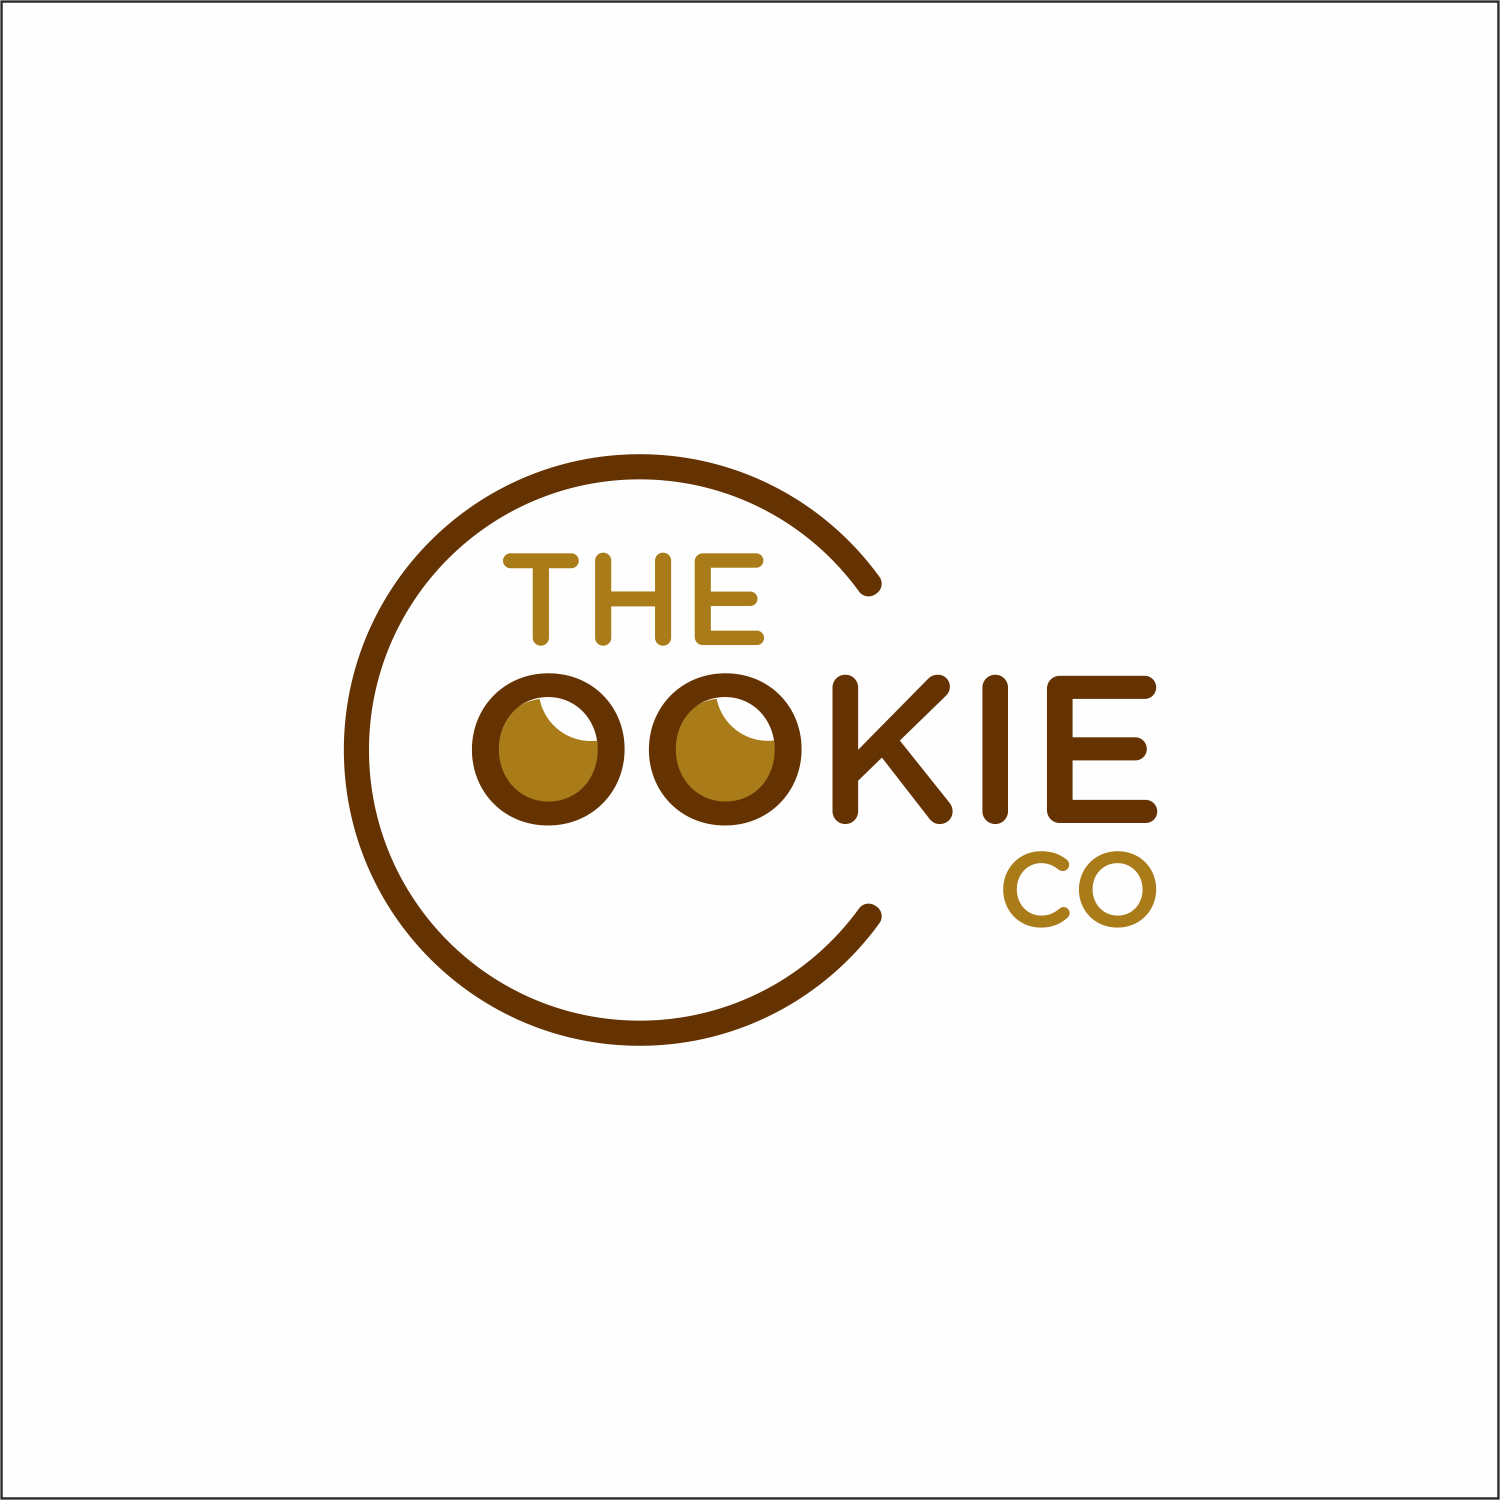 modern elegant bakery logo design for cookie co by subhadip design 17253961 modern elegant bakery logo design for